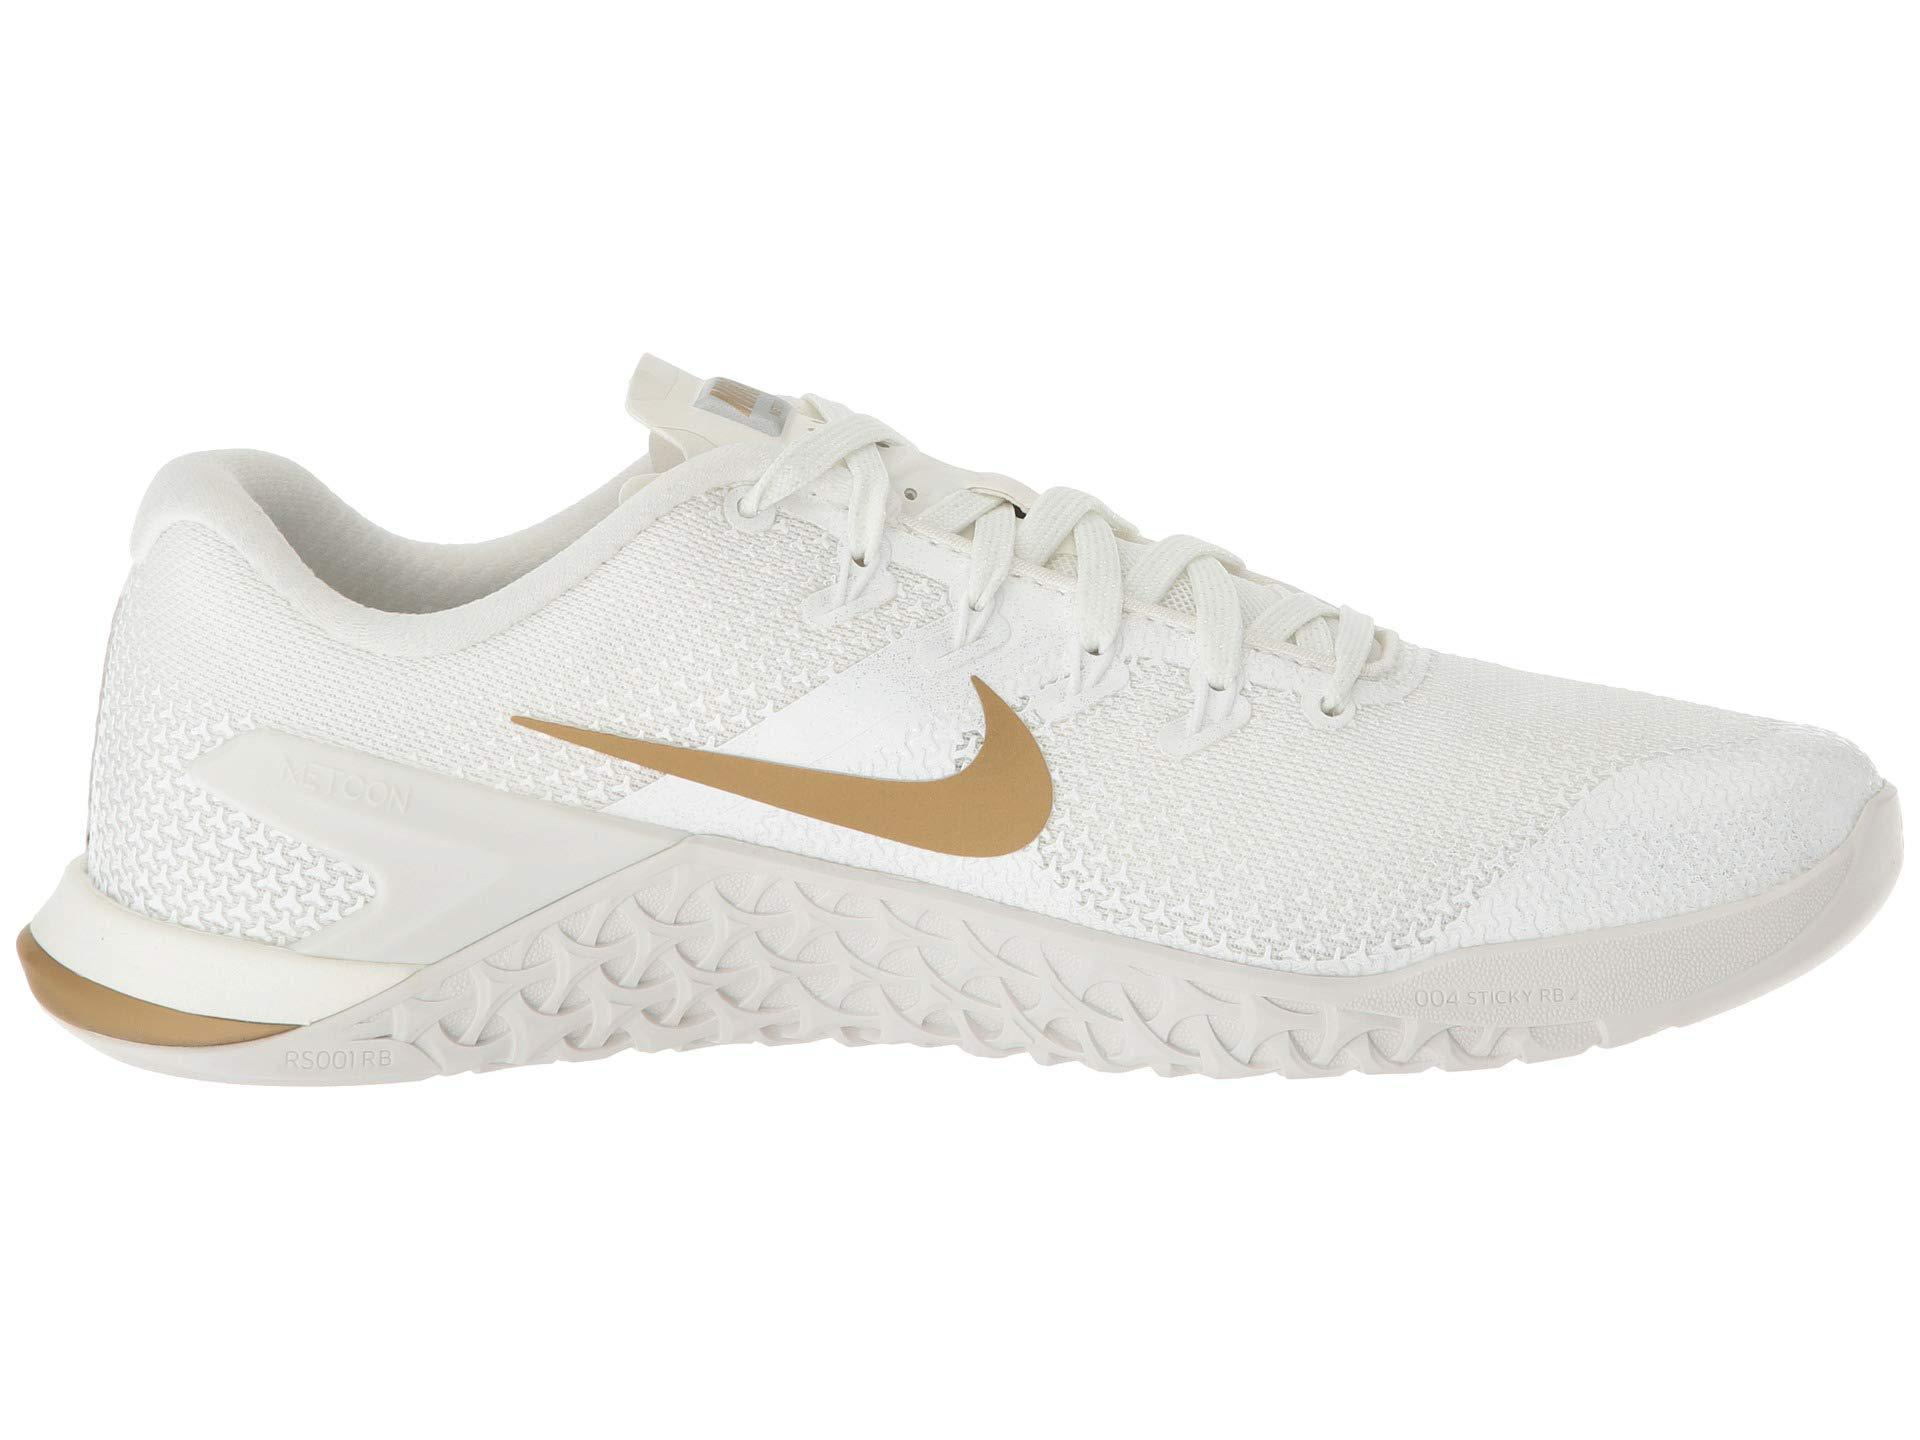 Nike Synthetic Metcon 4 Training Shoes